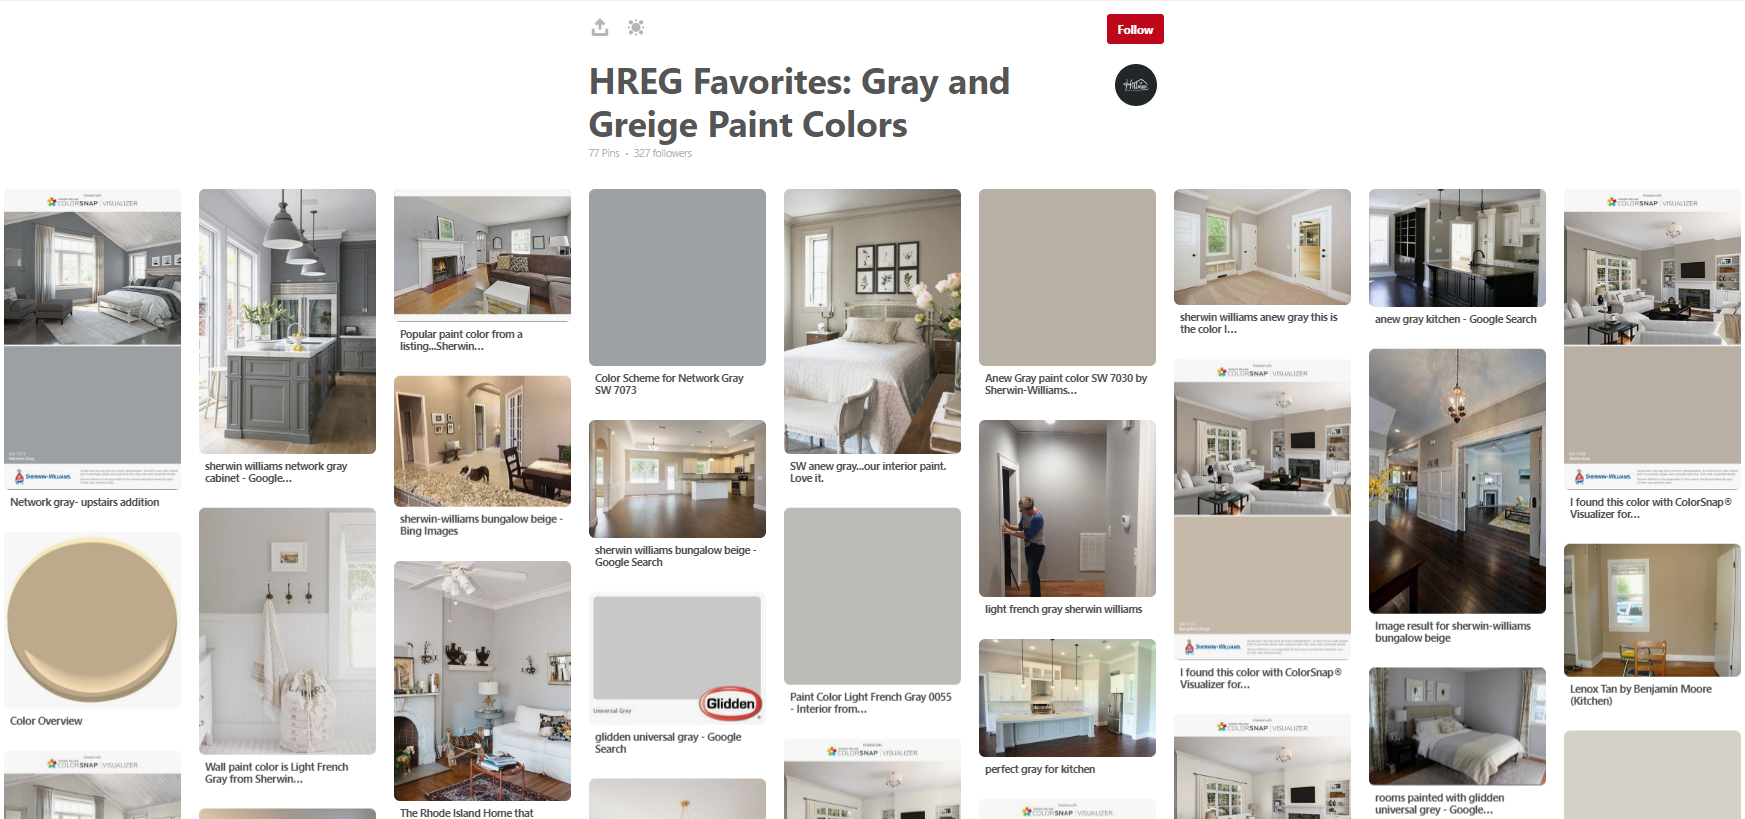 HREG Favorites: Gray and Greige Paint Colors